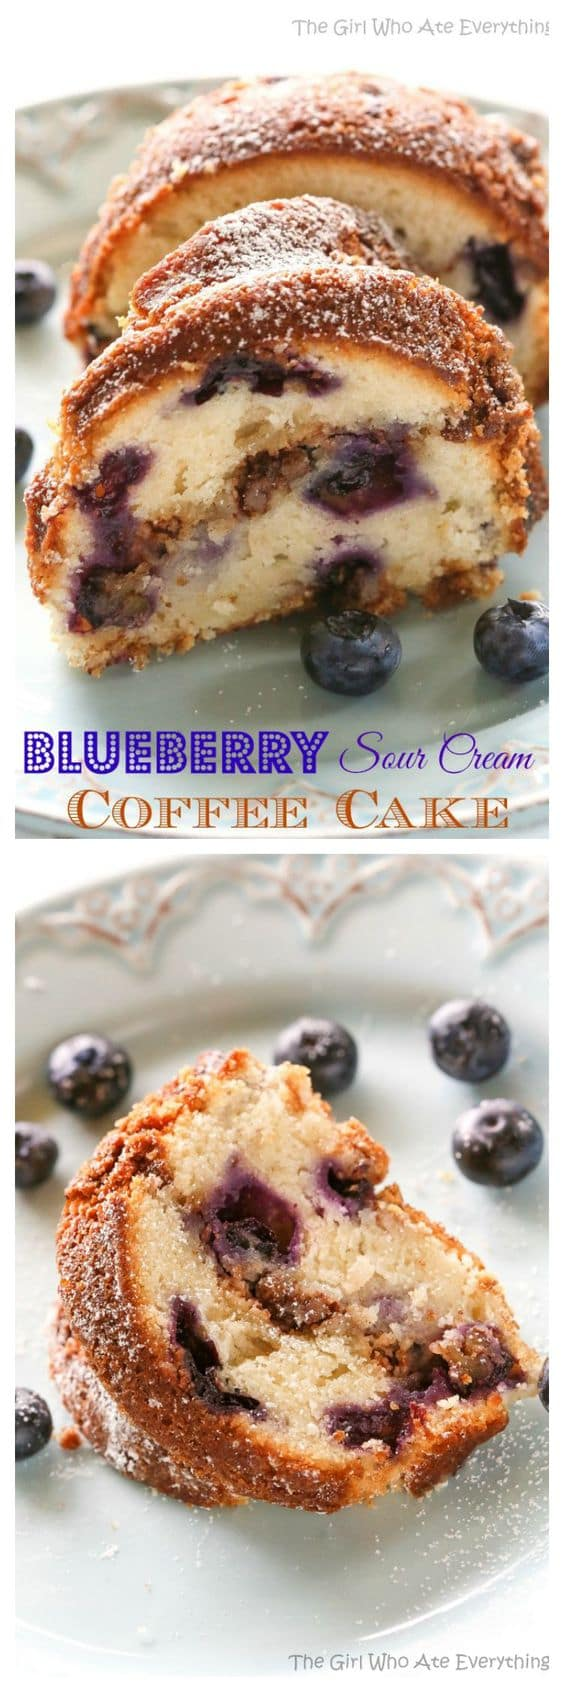 Blueberry Sour Cream Coffee Cake - a dense and delicious breakfast cake! #blueberry #sour #cream #coffee #cake #breakfast #dessert #recipe